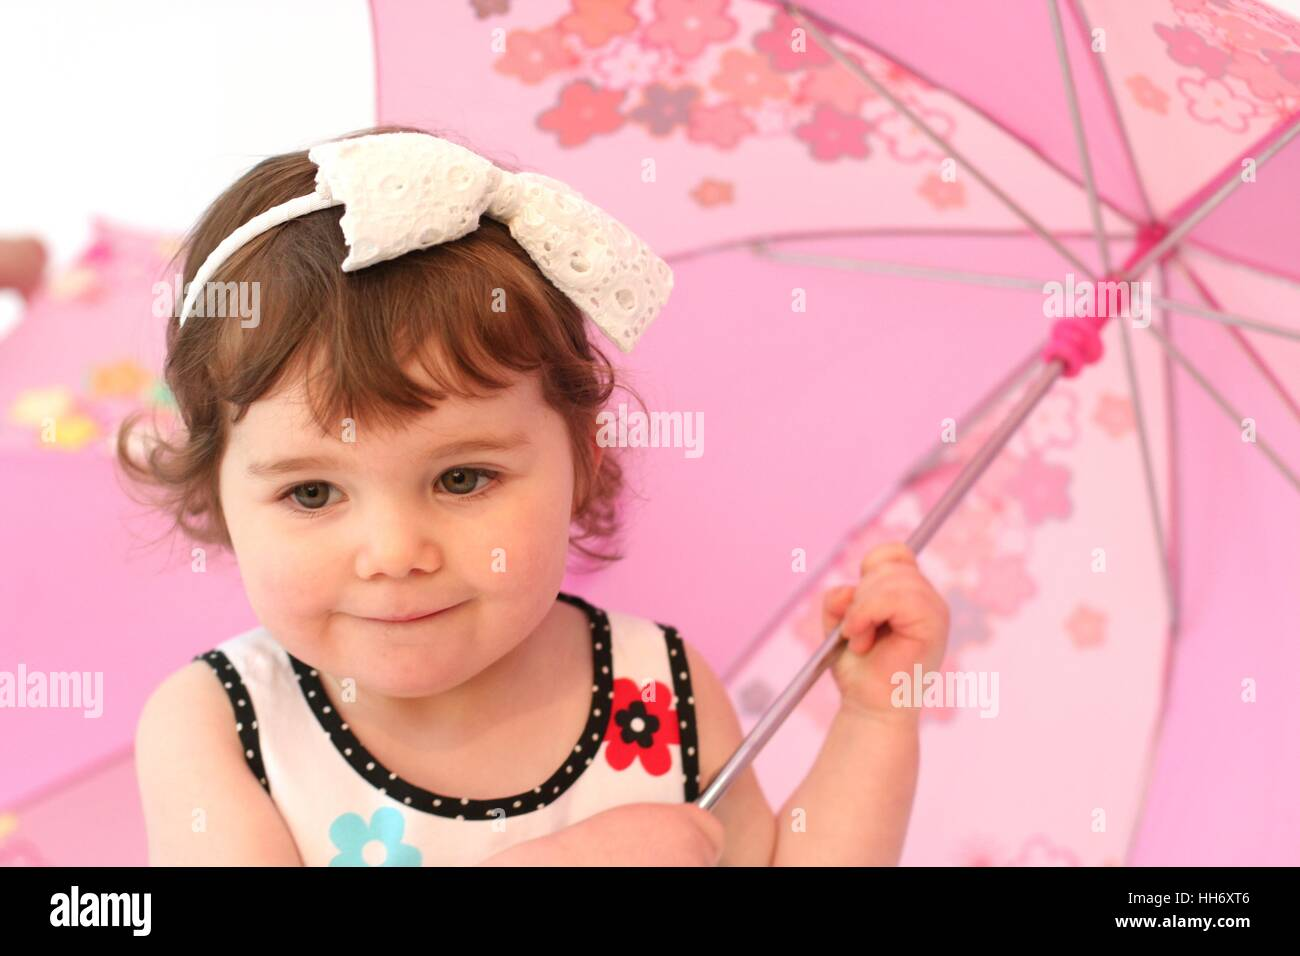 Little girl child playing with a pink umbrella wearing a bow hairband, happy toddler, innocent concept, family fun, - Stock Image